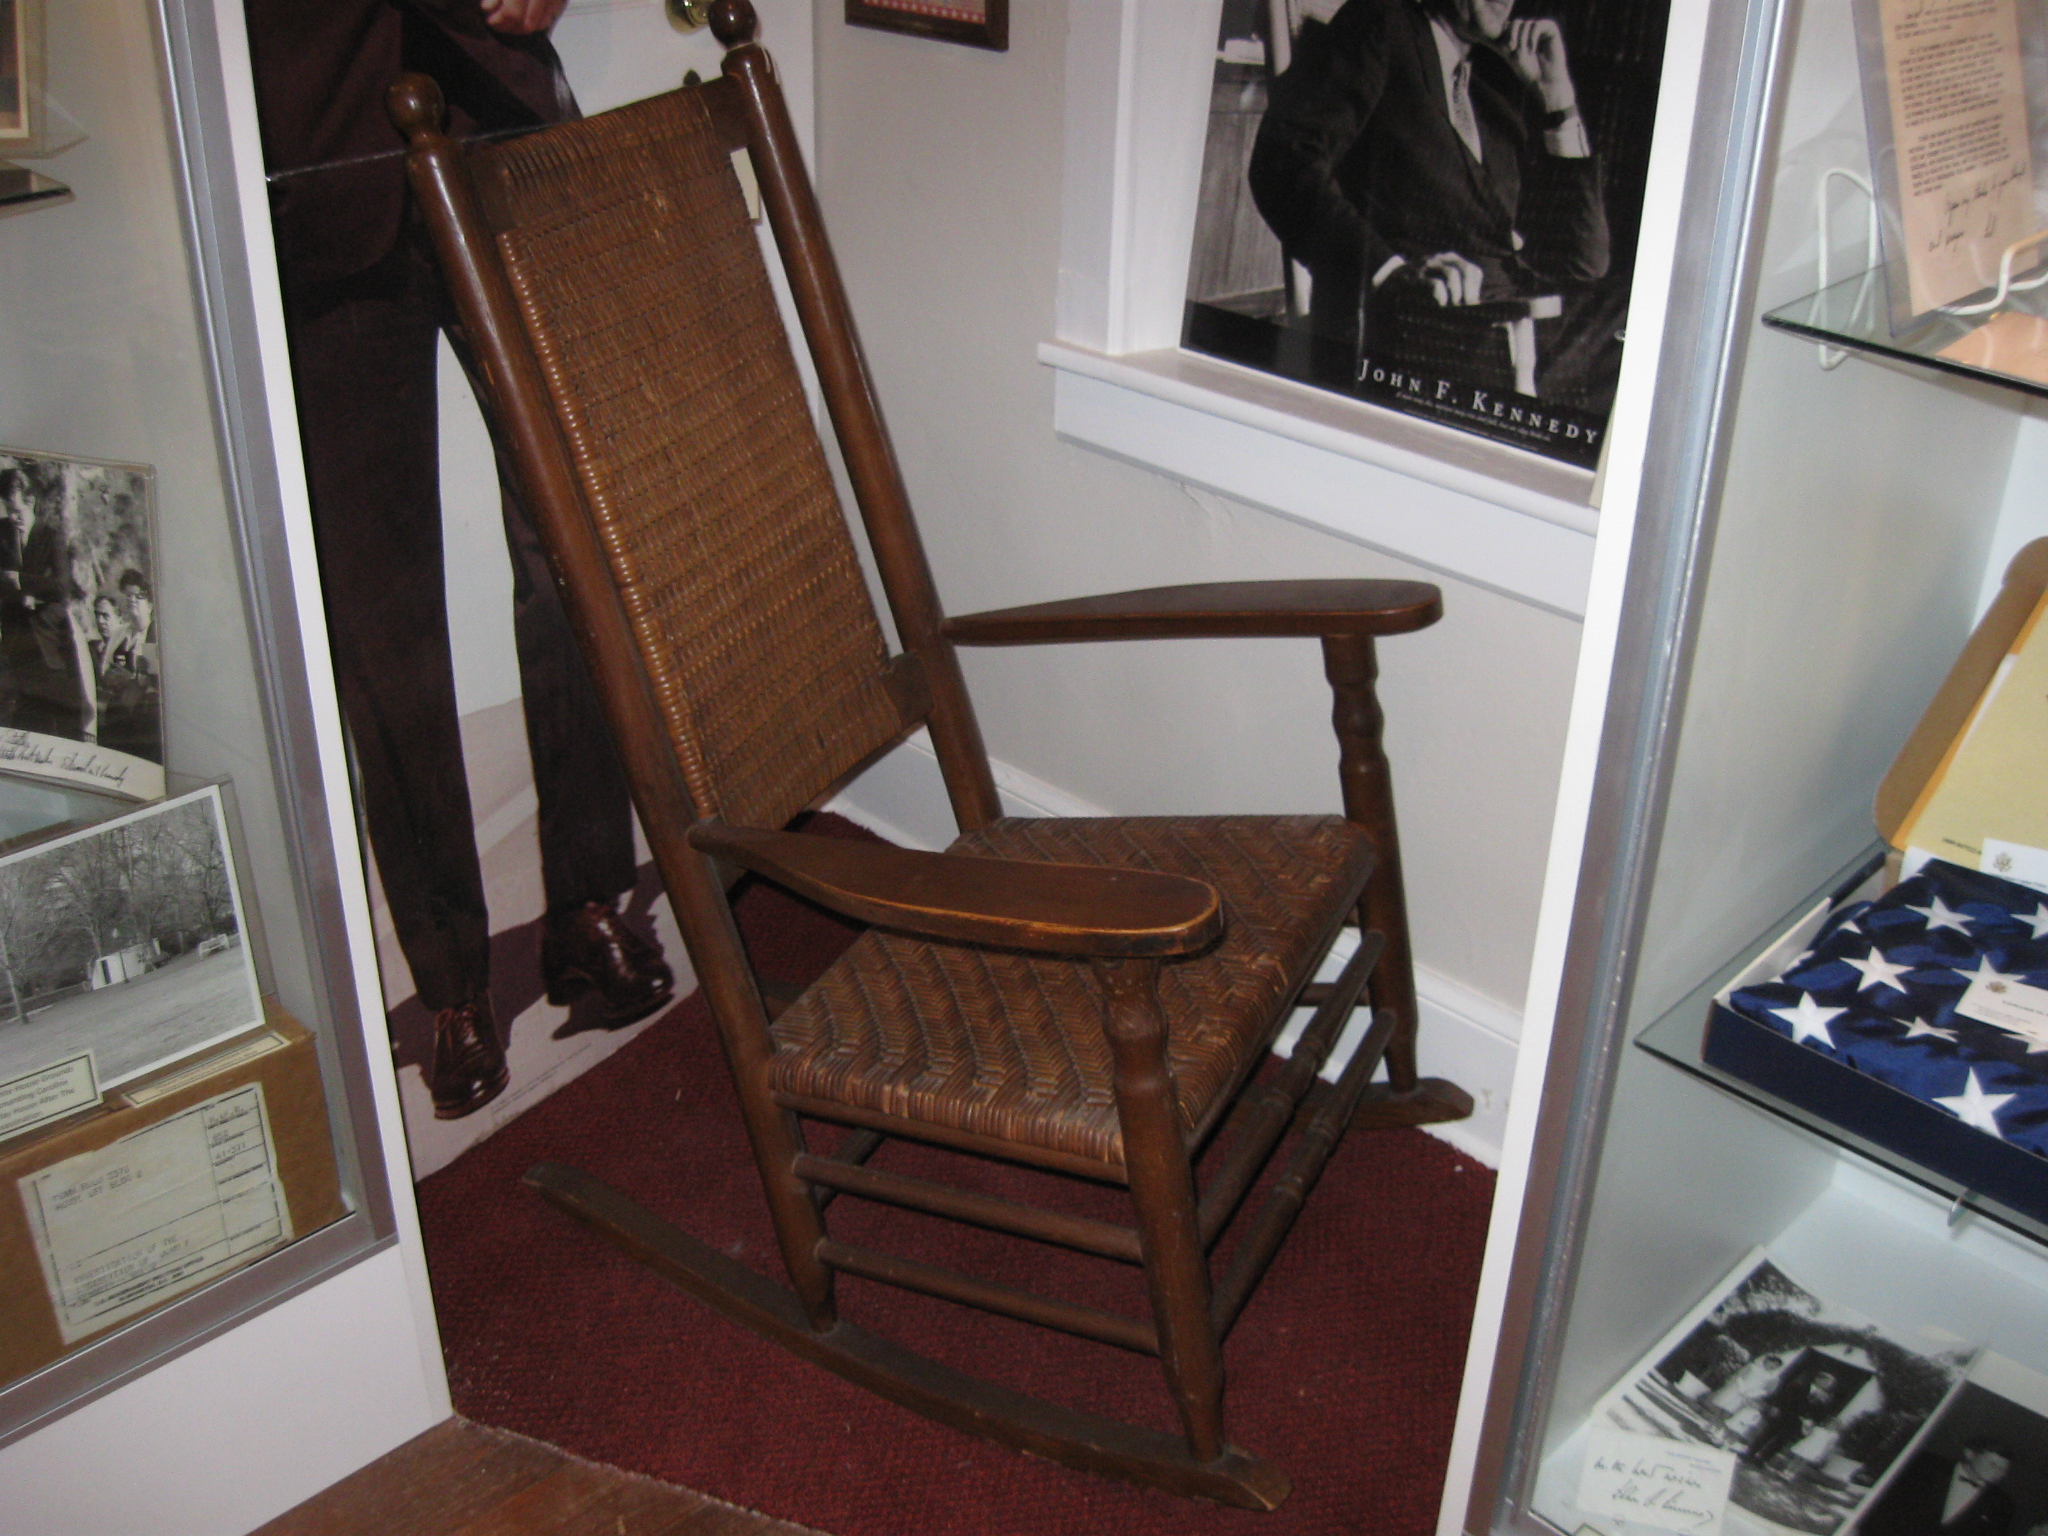 Wonderful image of One of Senator John F. Kennedy's rocking chairs. This view was taken  with #603E2E color and 2048x1536 pixels